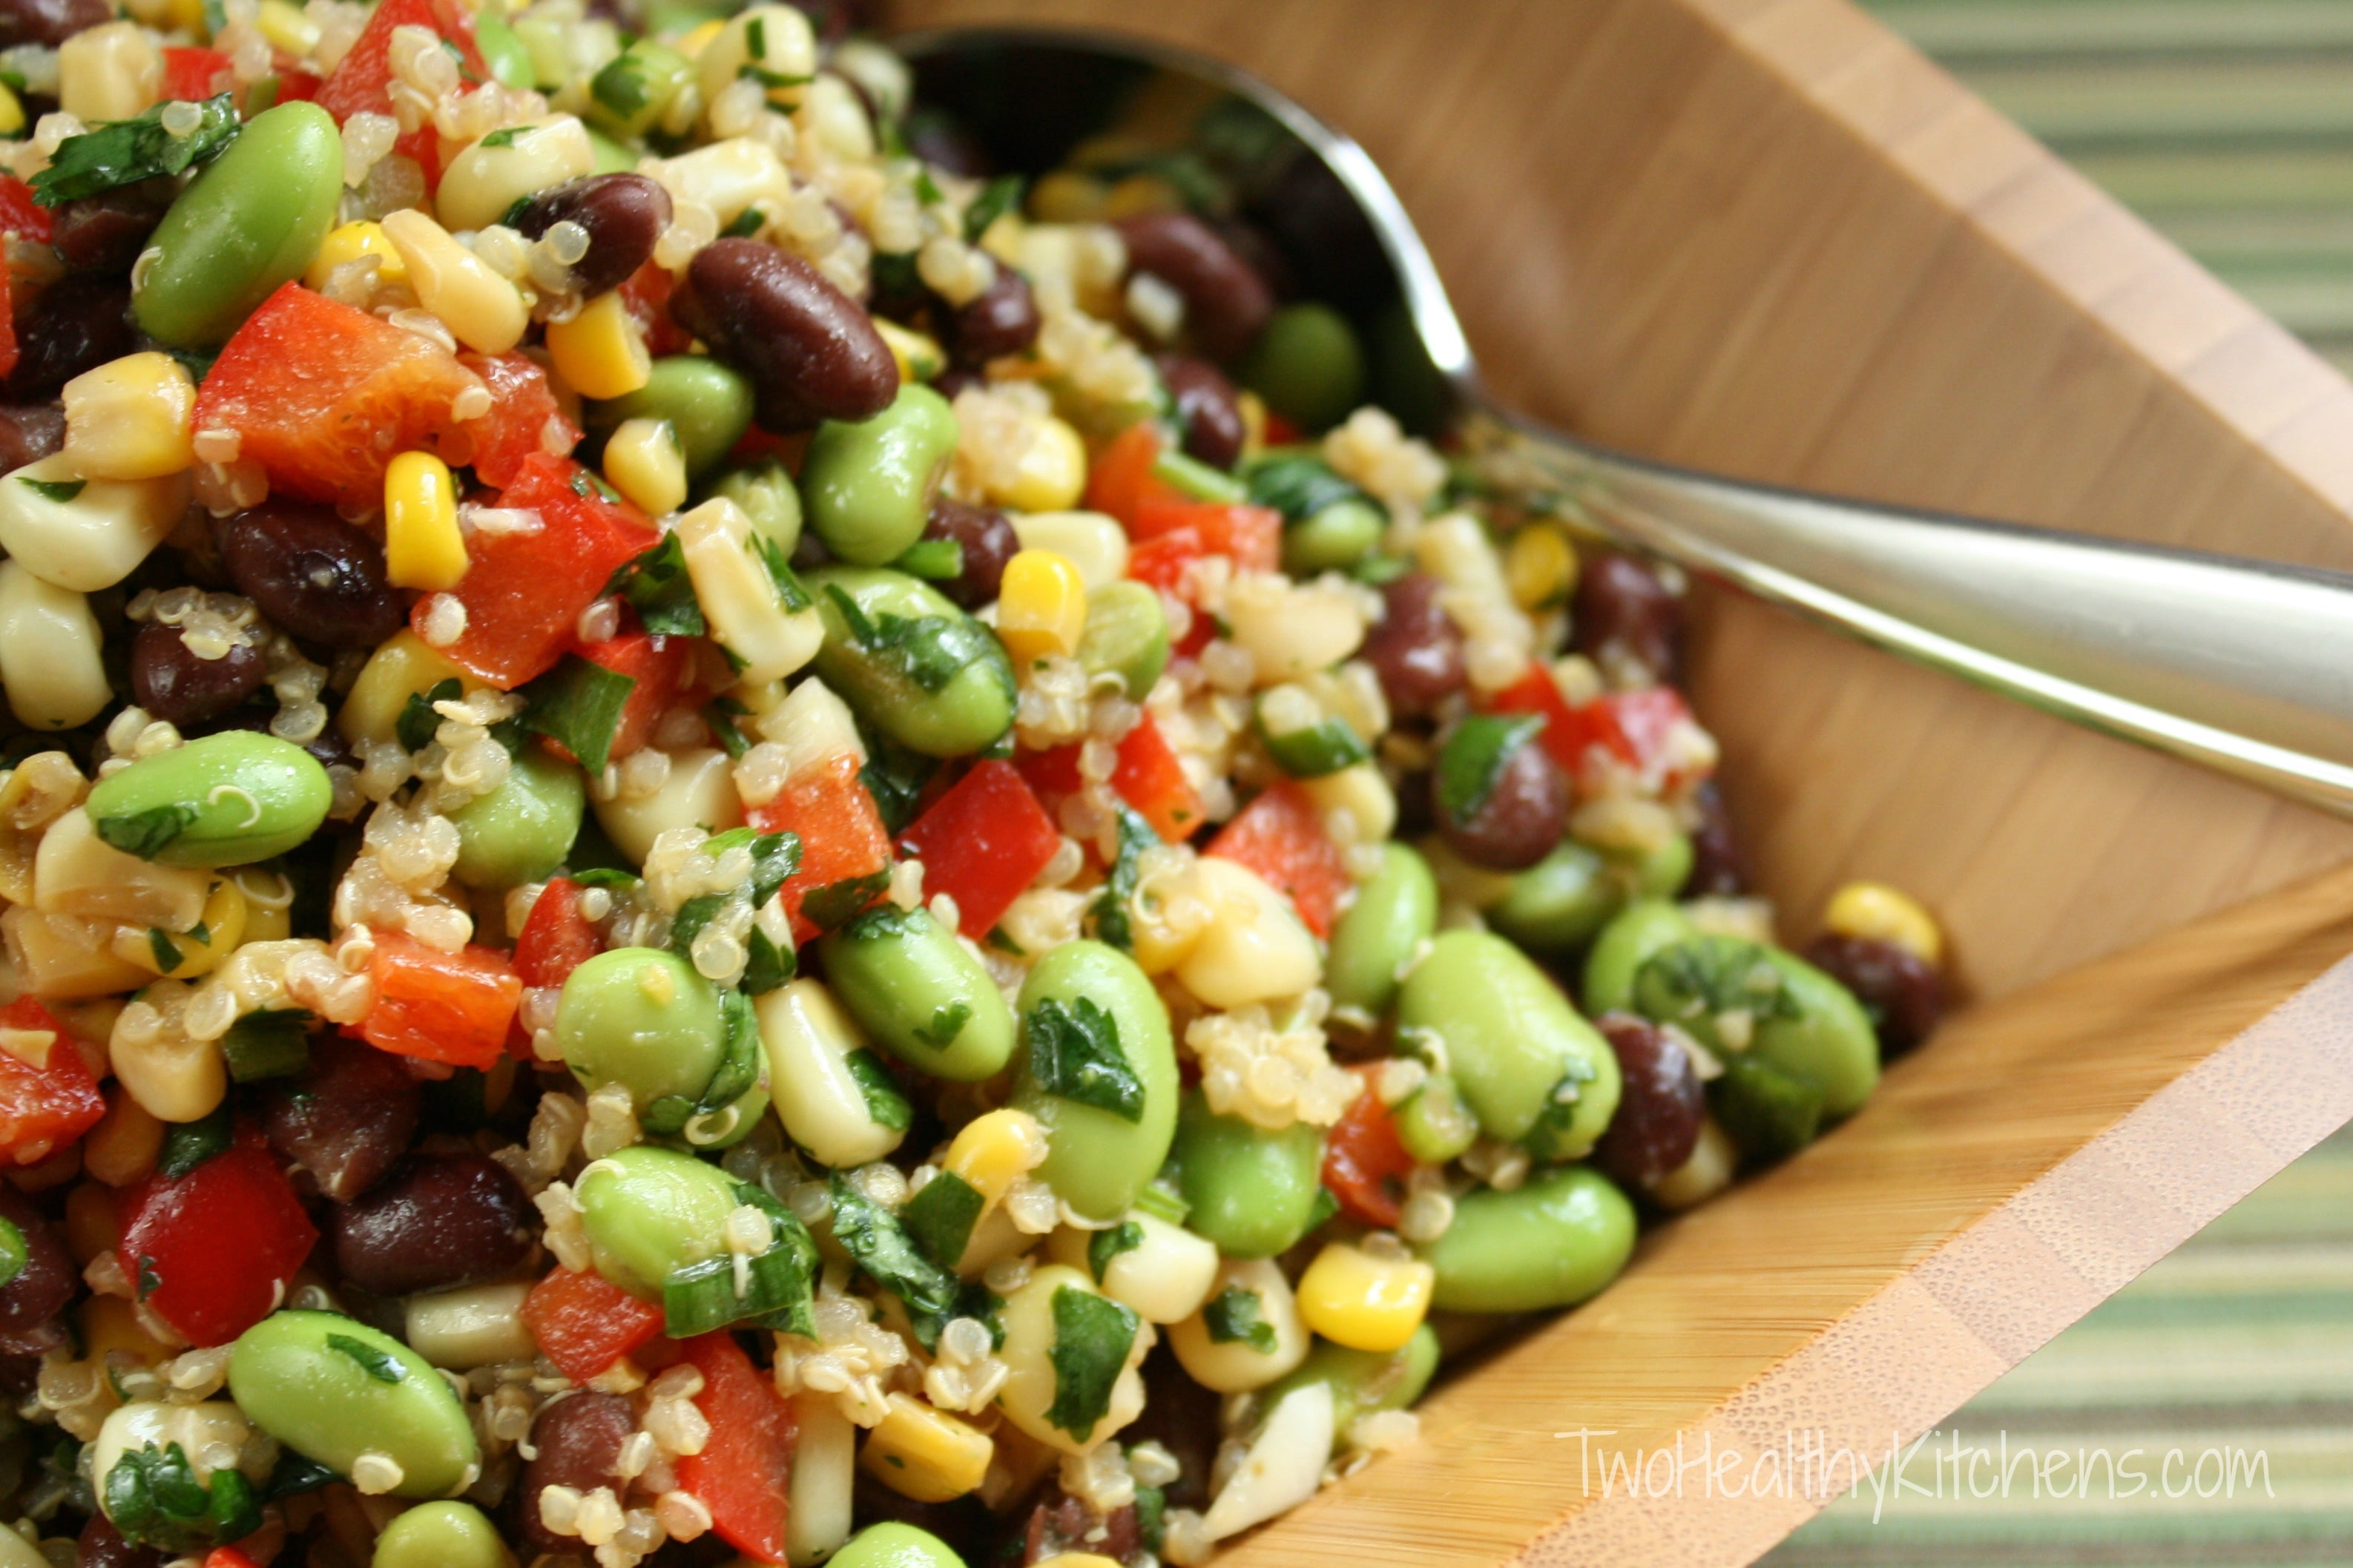 Corn, Edamame and Quinoa Salad with Lemon-Dijon Vinaigrette | Two Healthy Kitchens